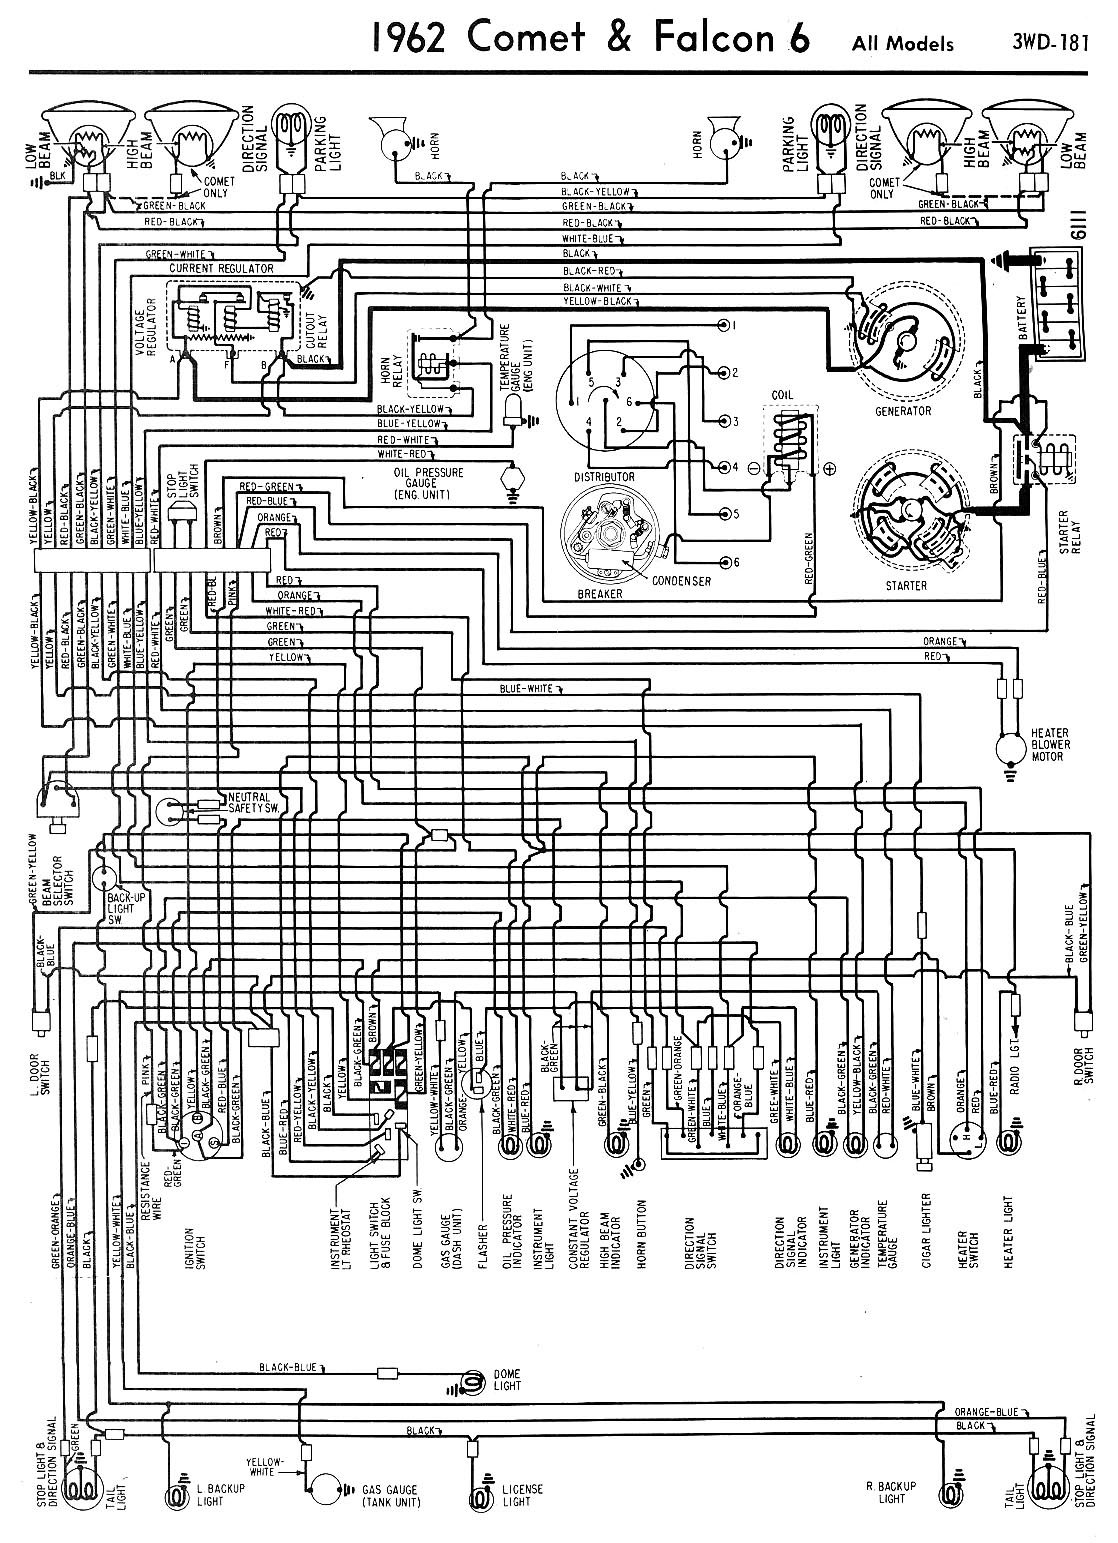 Falcon Diagrams 1989 Club Car Wiring Diagram 62 Comet Drawing A